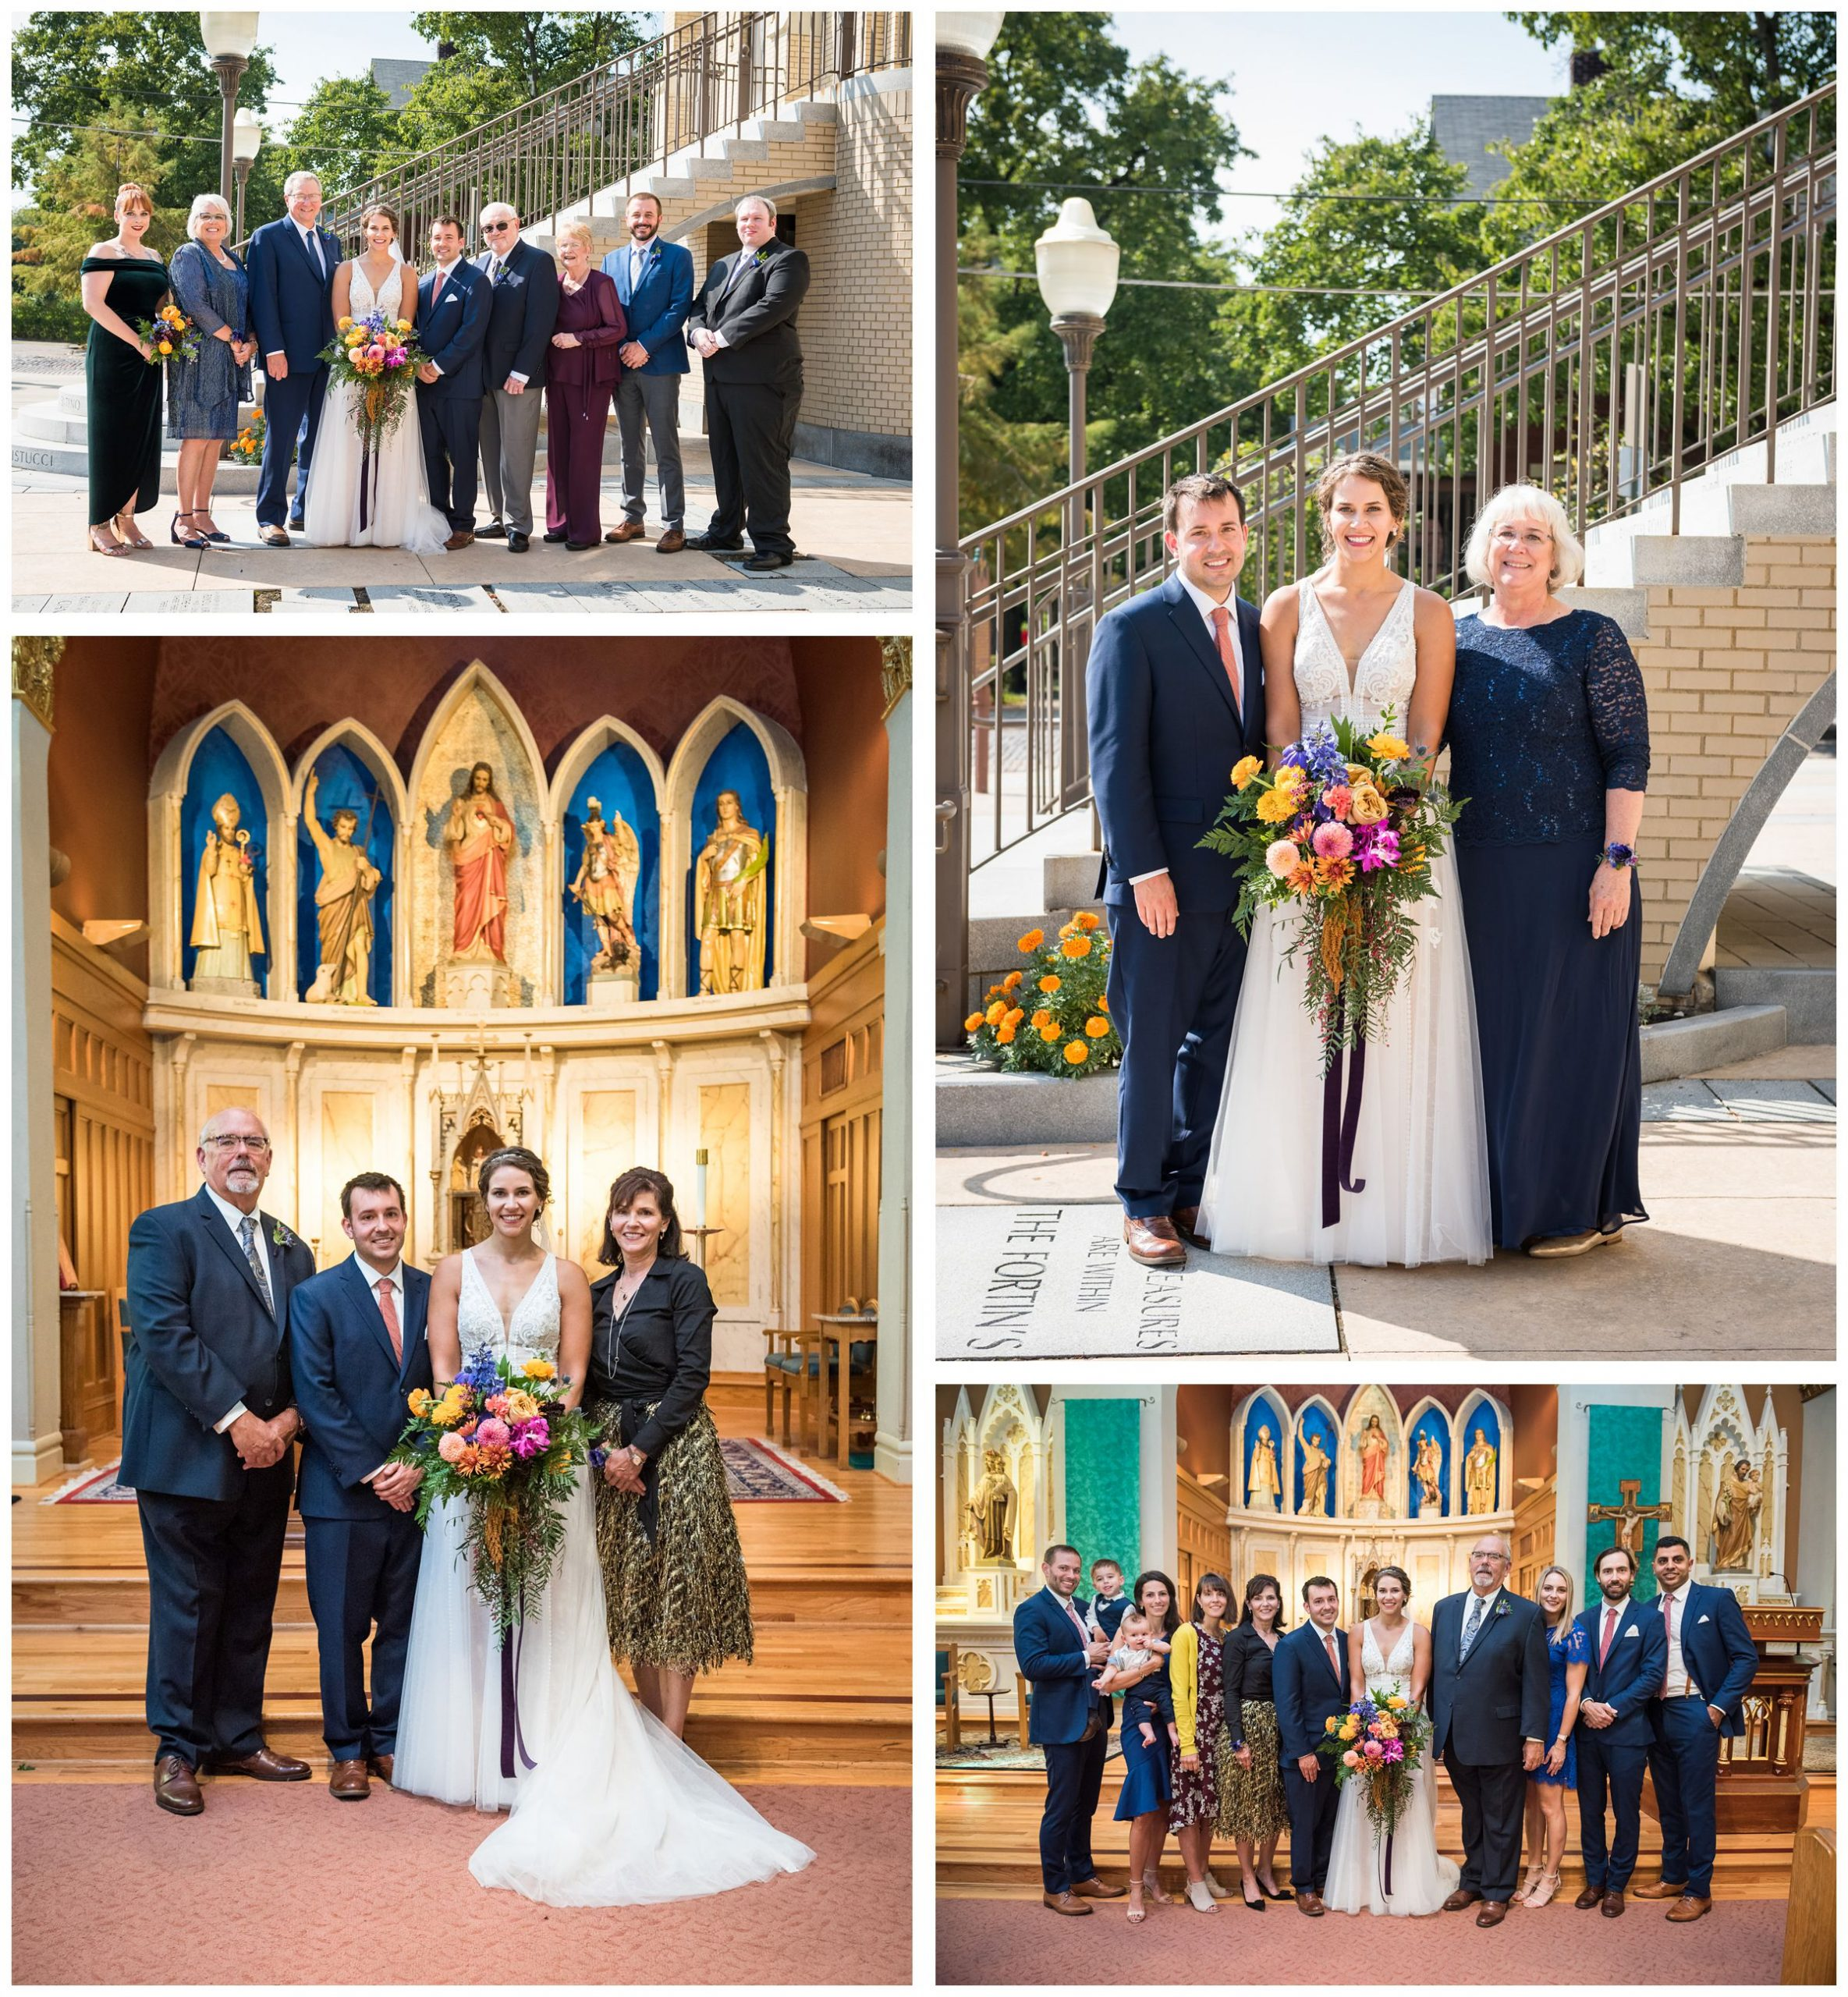 family portraits after wedding ceremony at St. John the Baptist Catholic Church in downtown Columbus, Ohio